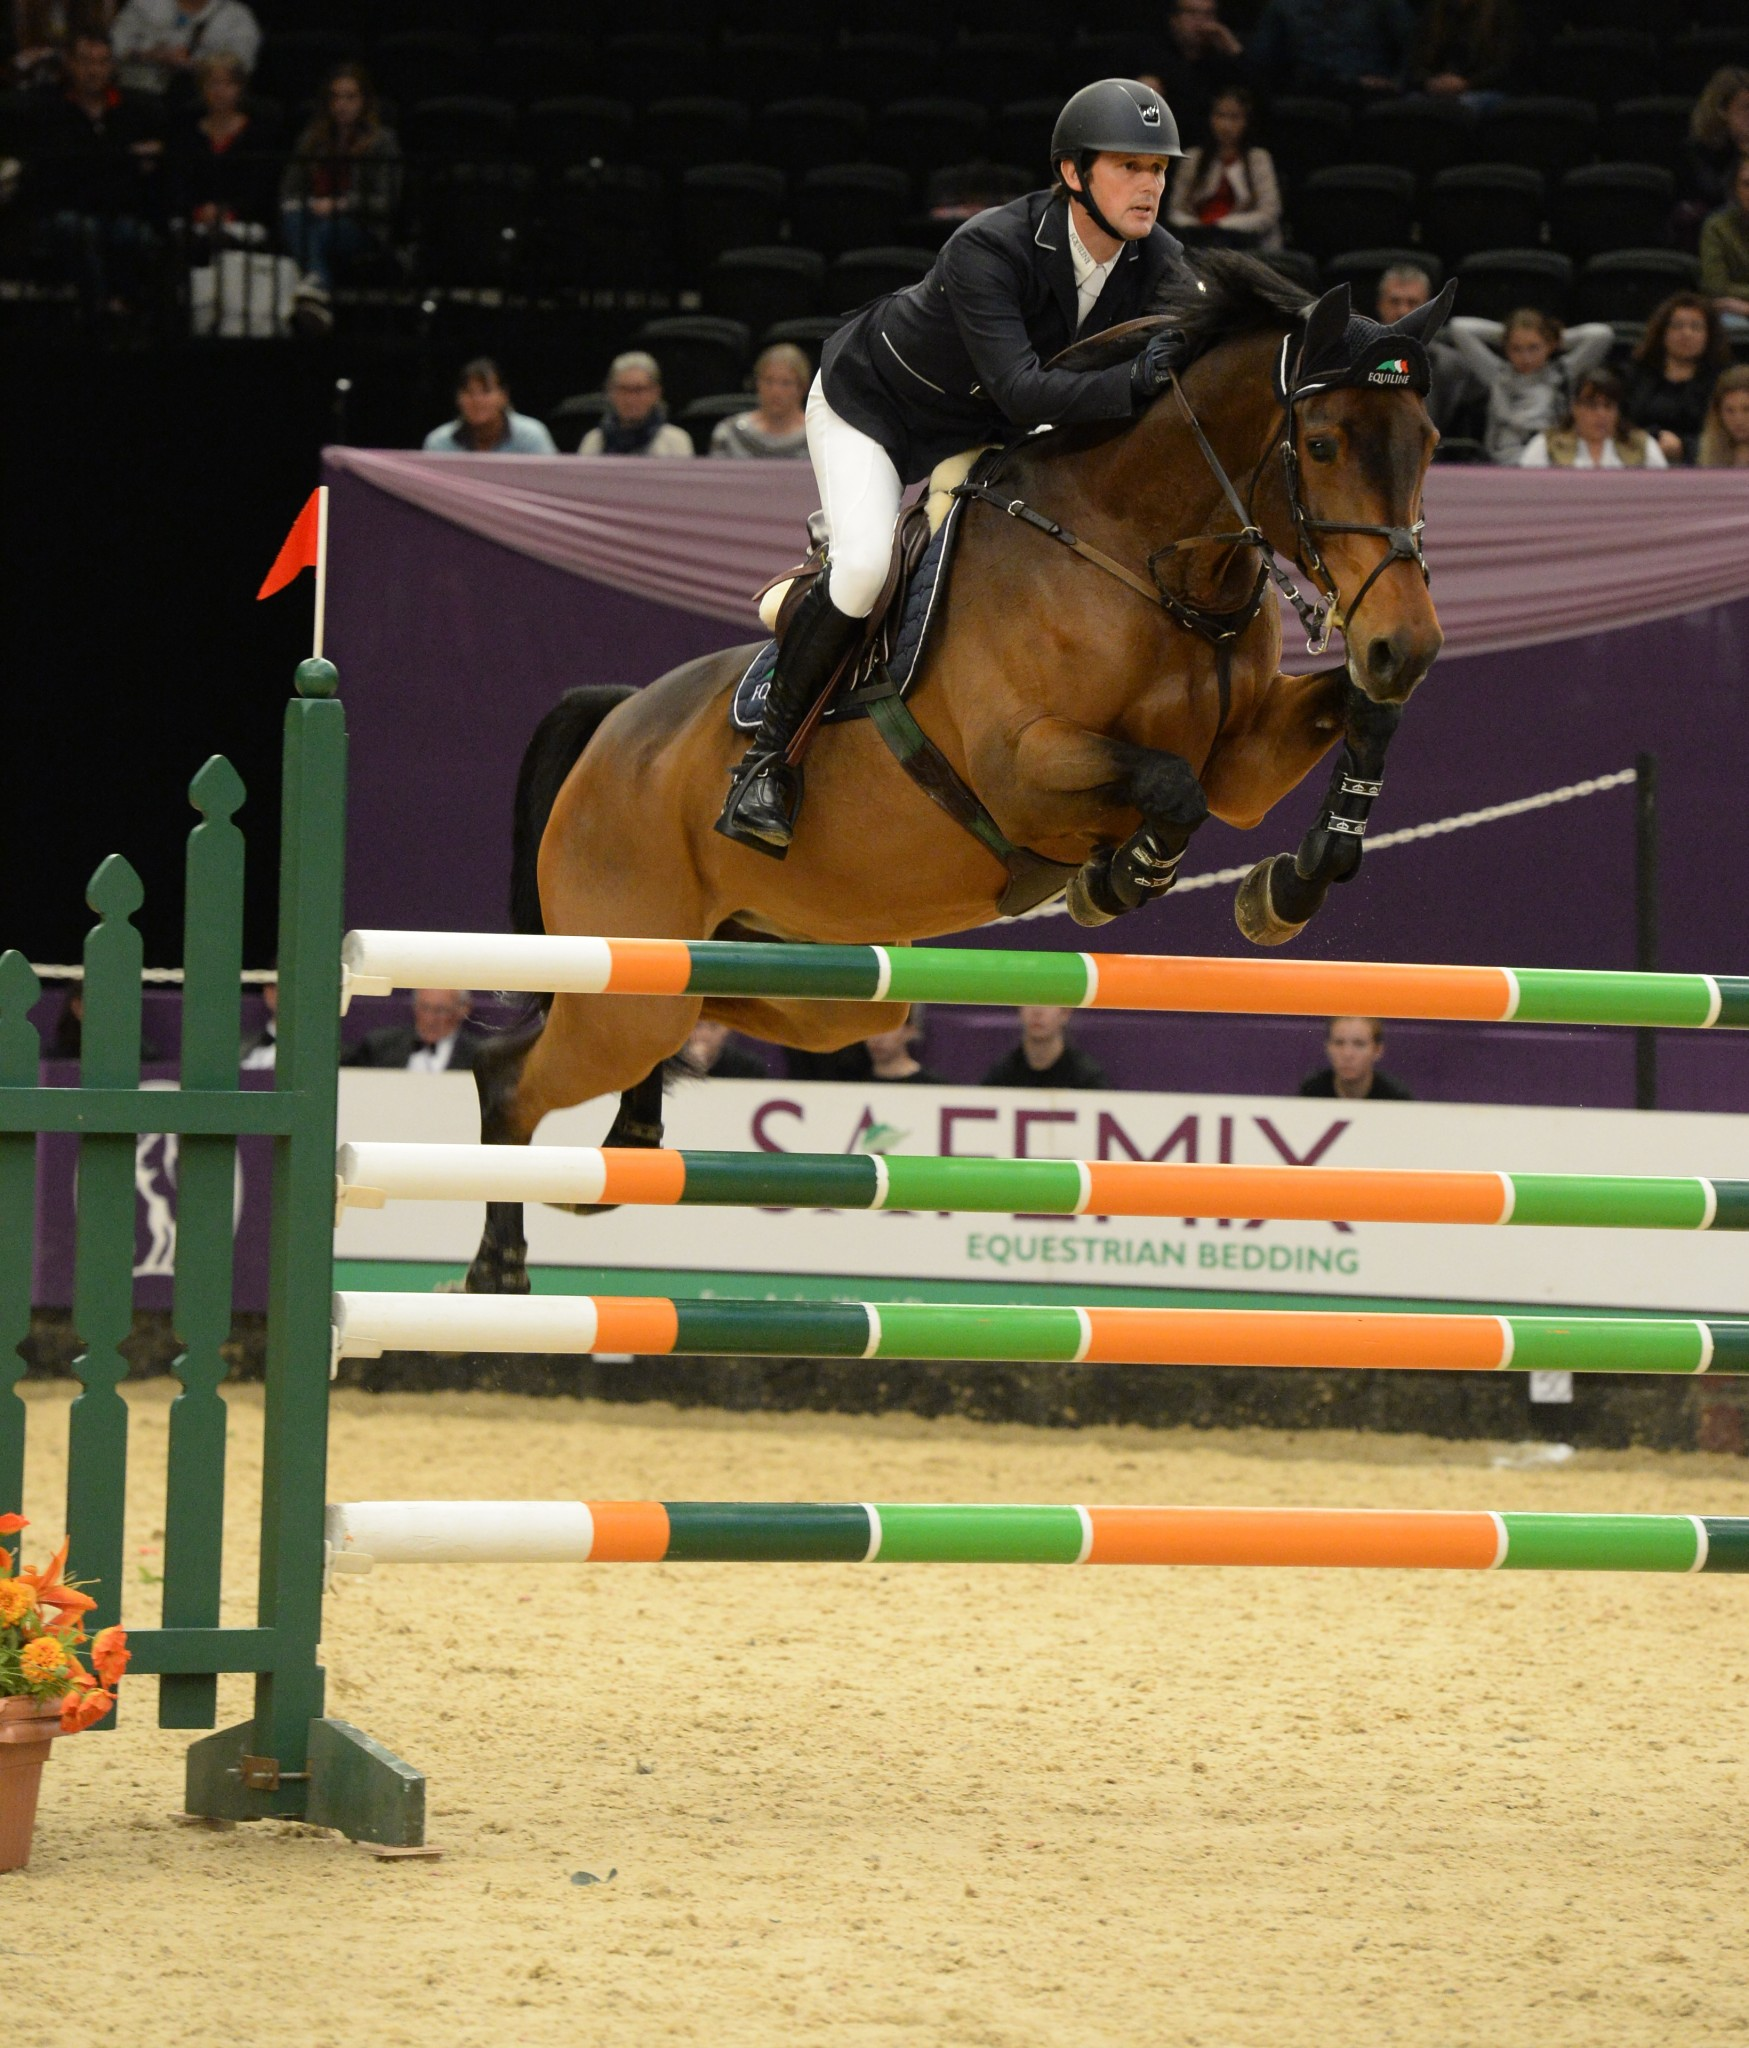 Billy Twomey Leading Showjumper - Billy Twomey Crowned Leading Showjumper of the Year